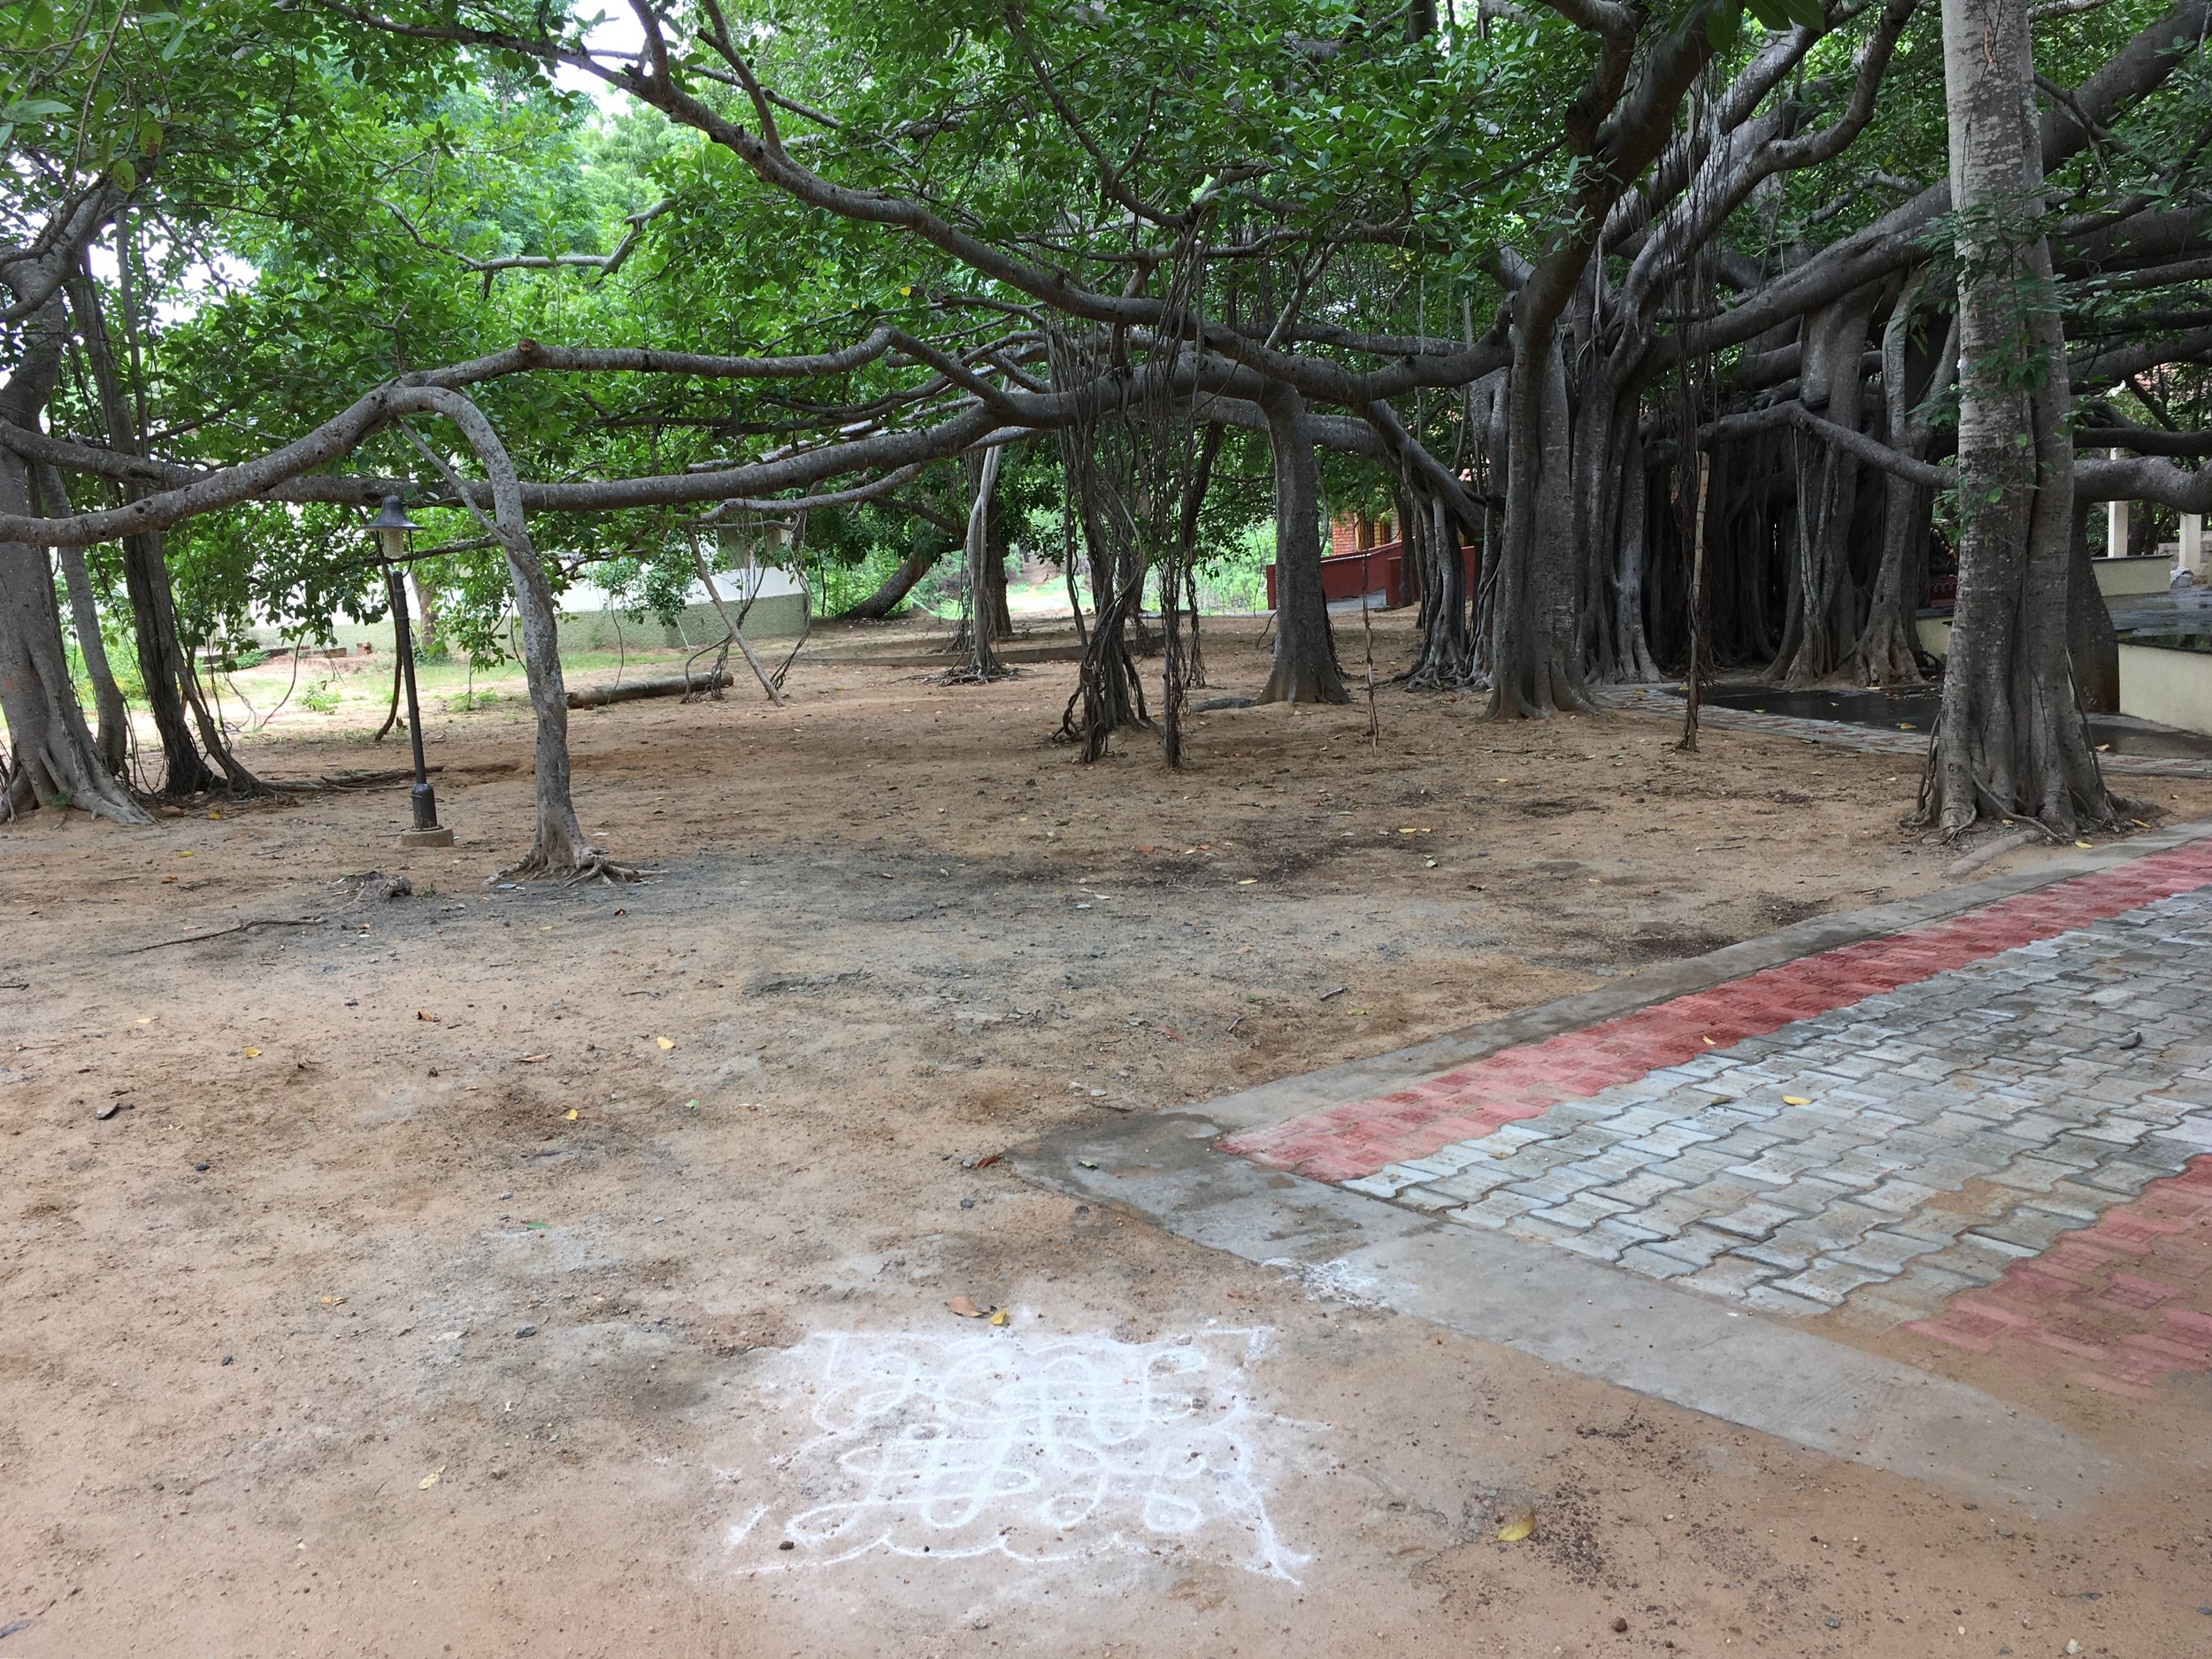 Ragnoli in front of a banyan tree at the Kalakshetra Foundation (a traditional performing arts school in Chennai).